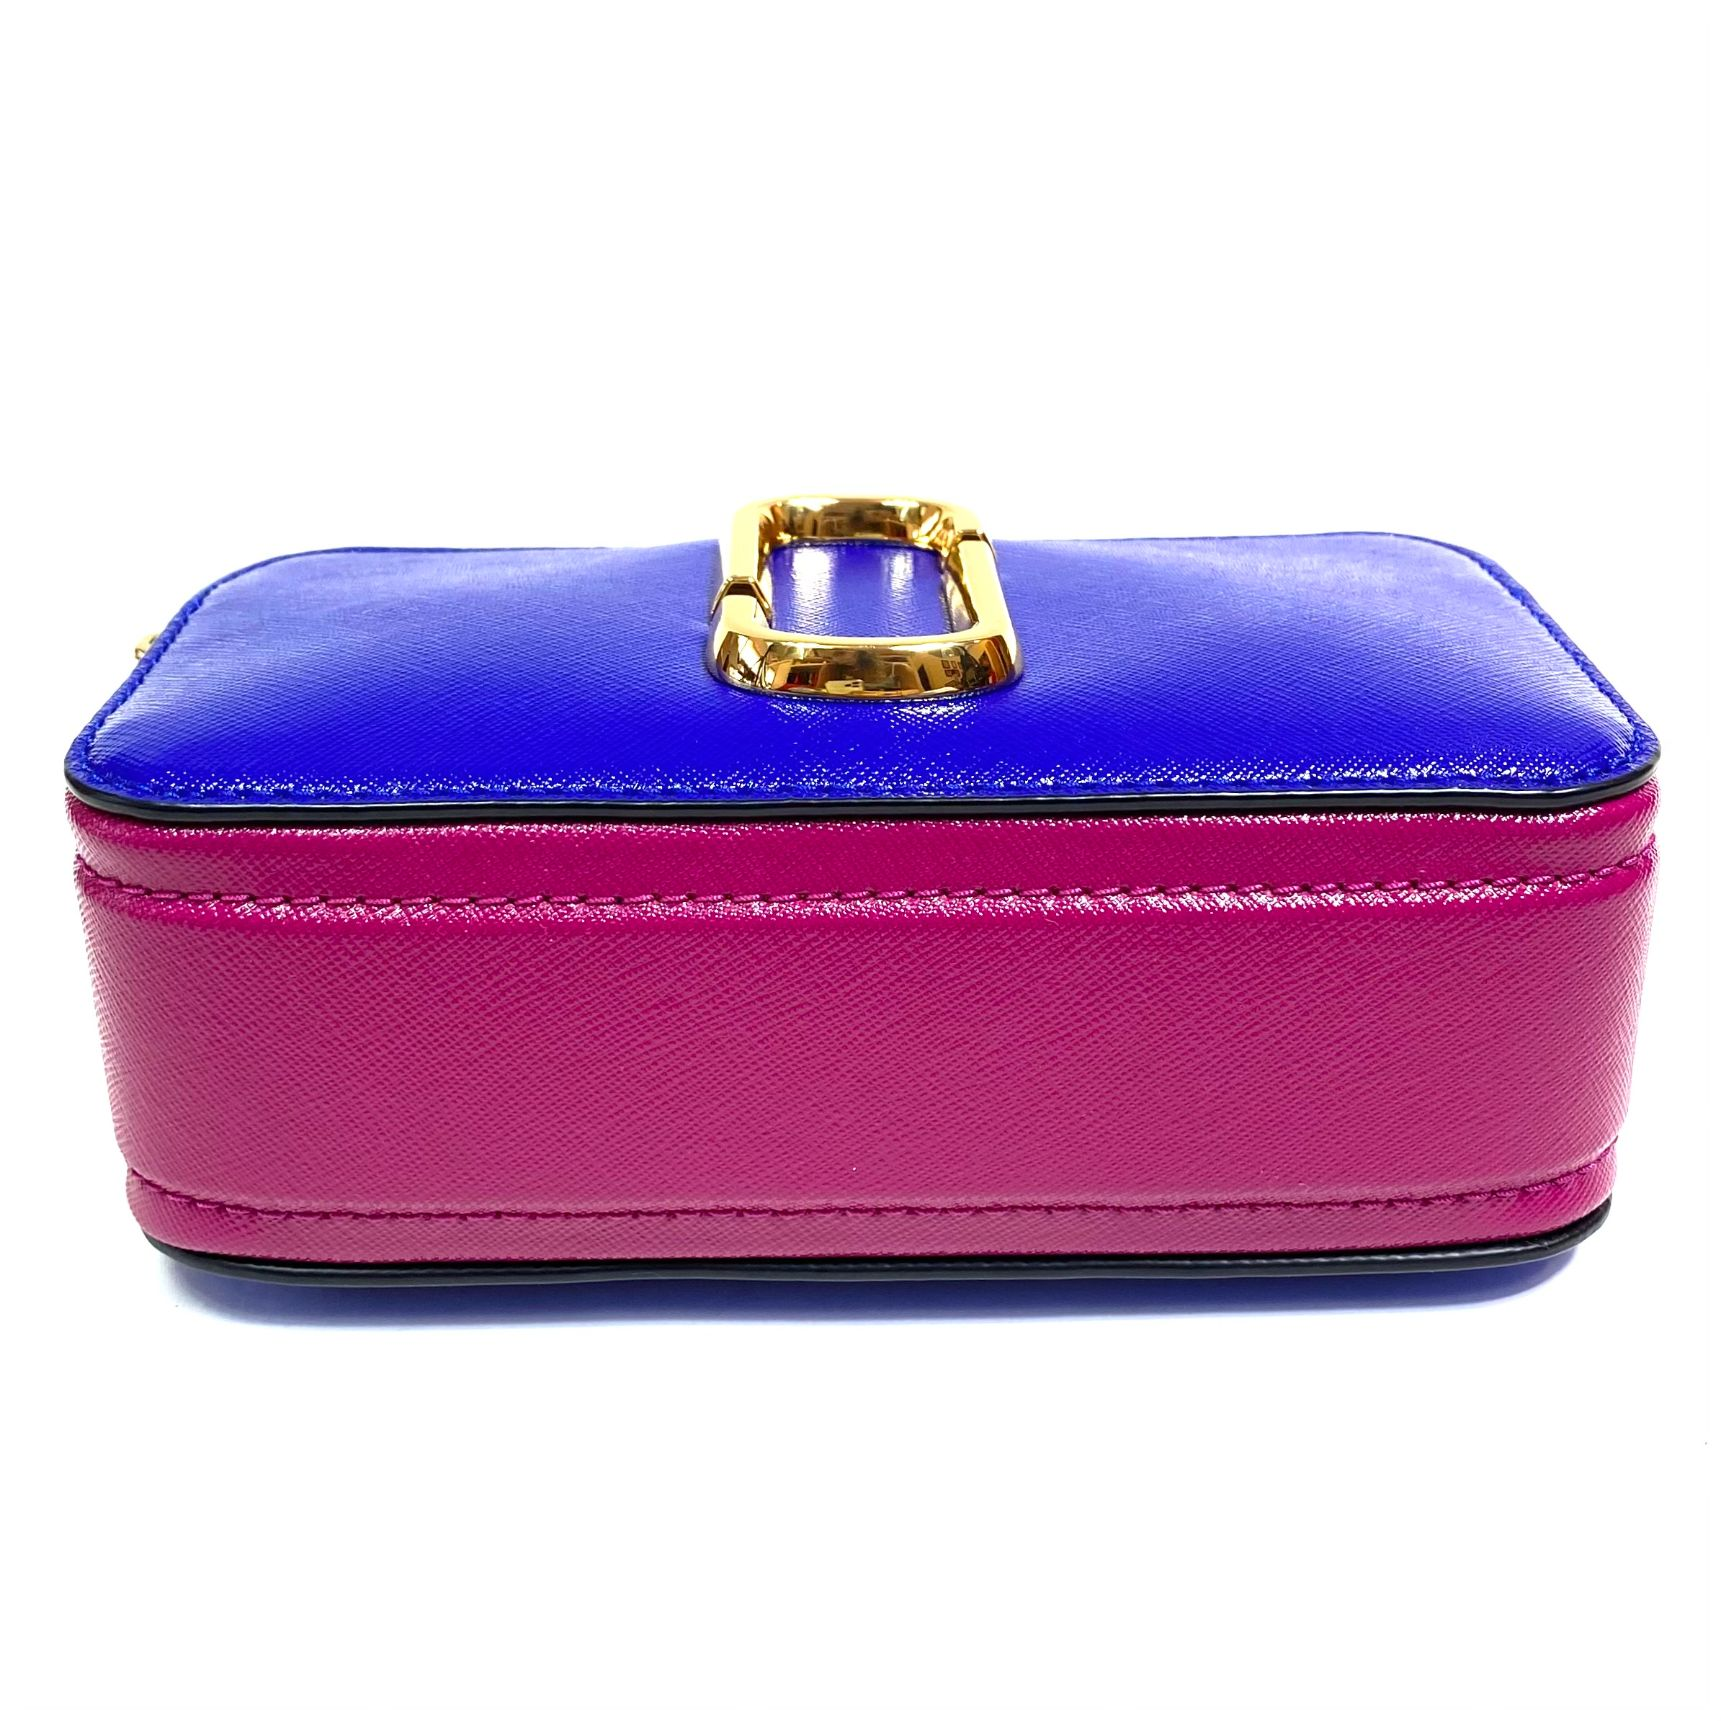 Bolsa Marc Jacobs Color